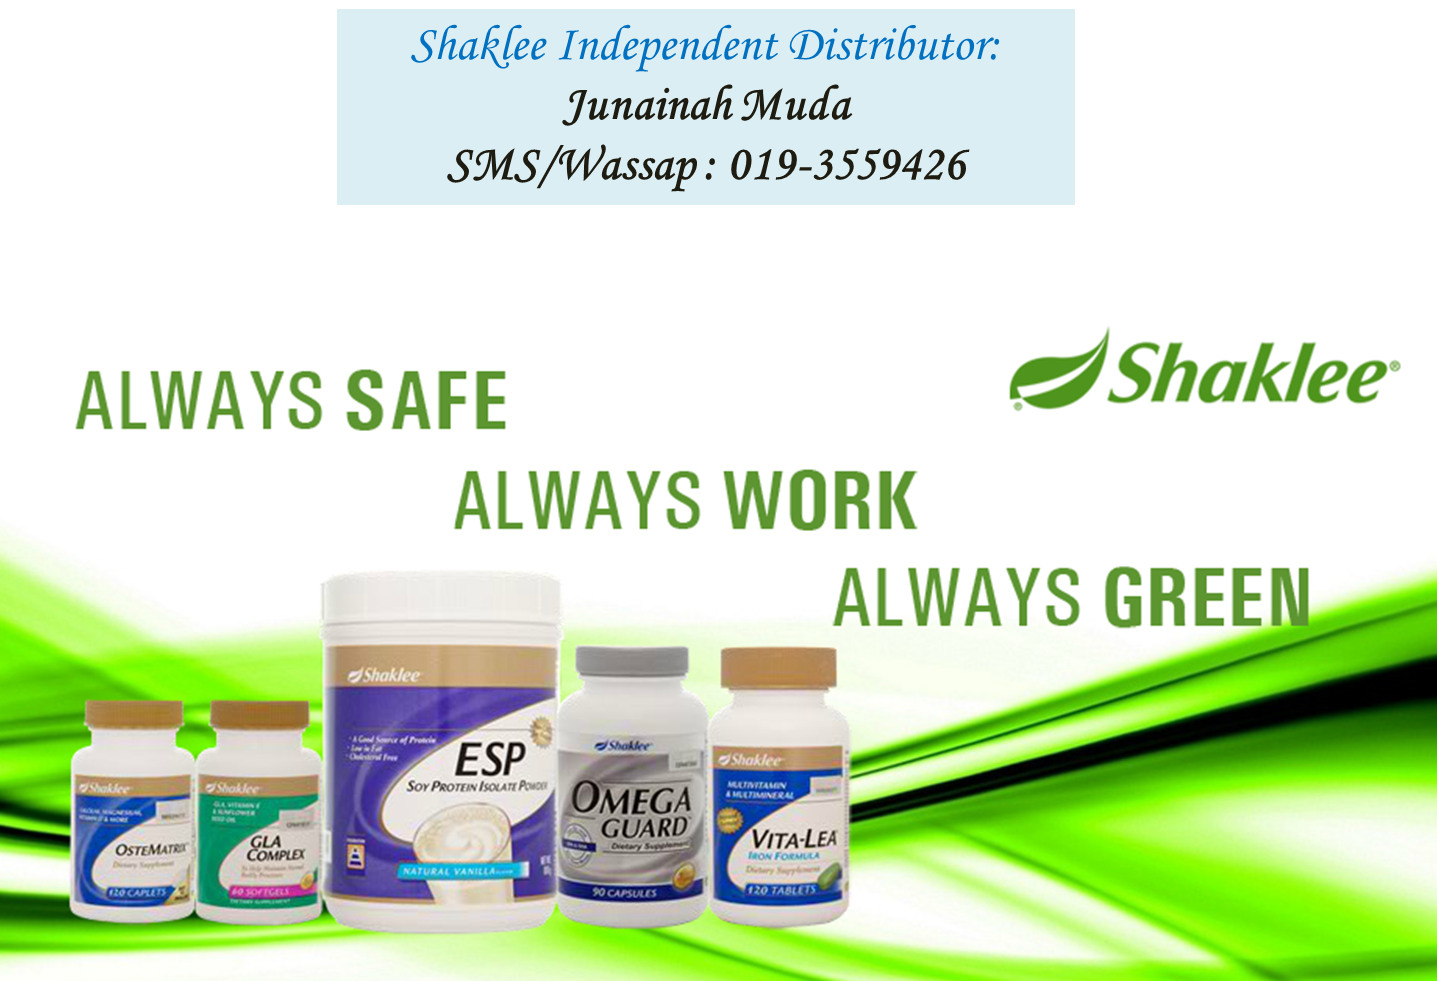 I am a Shaklee Independent Distributor